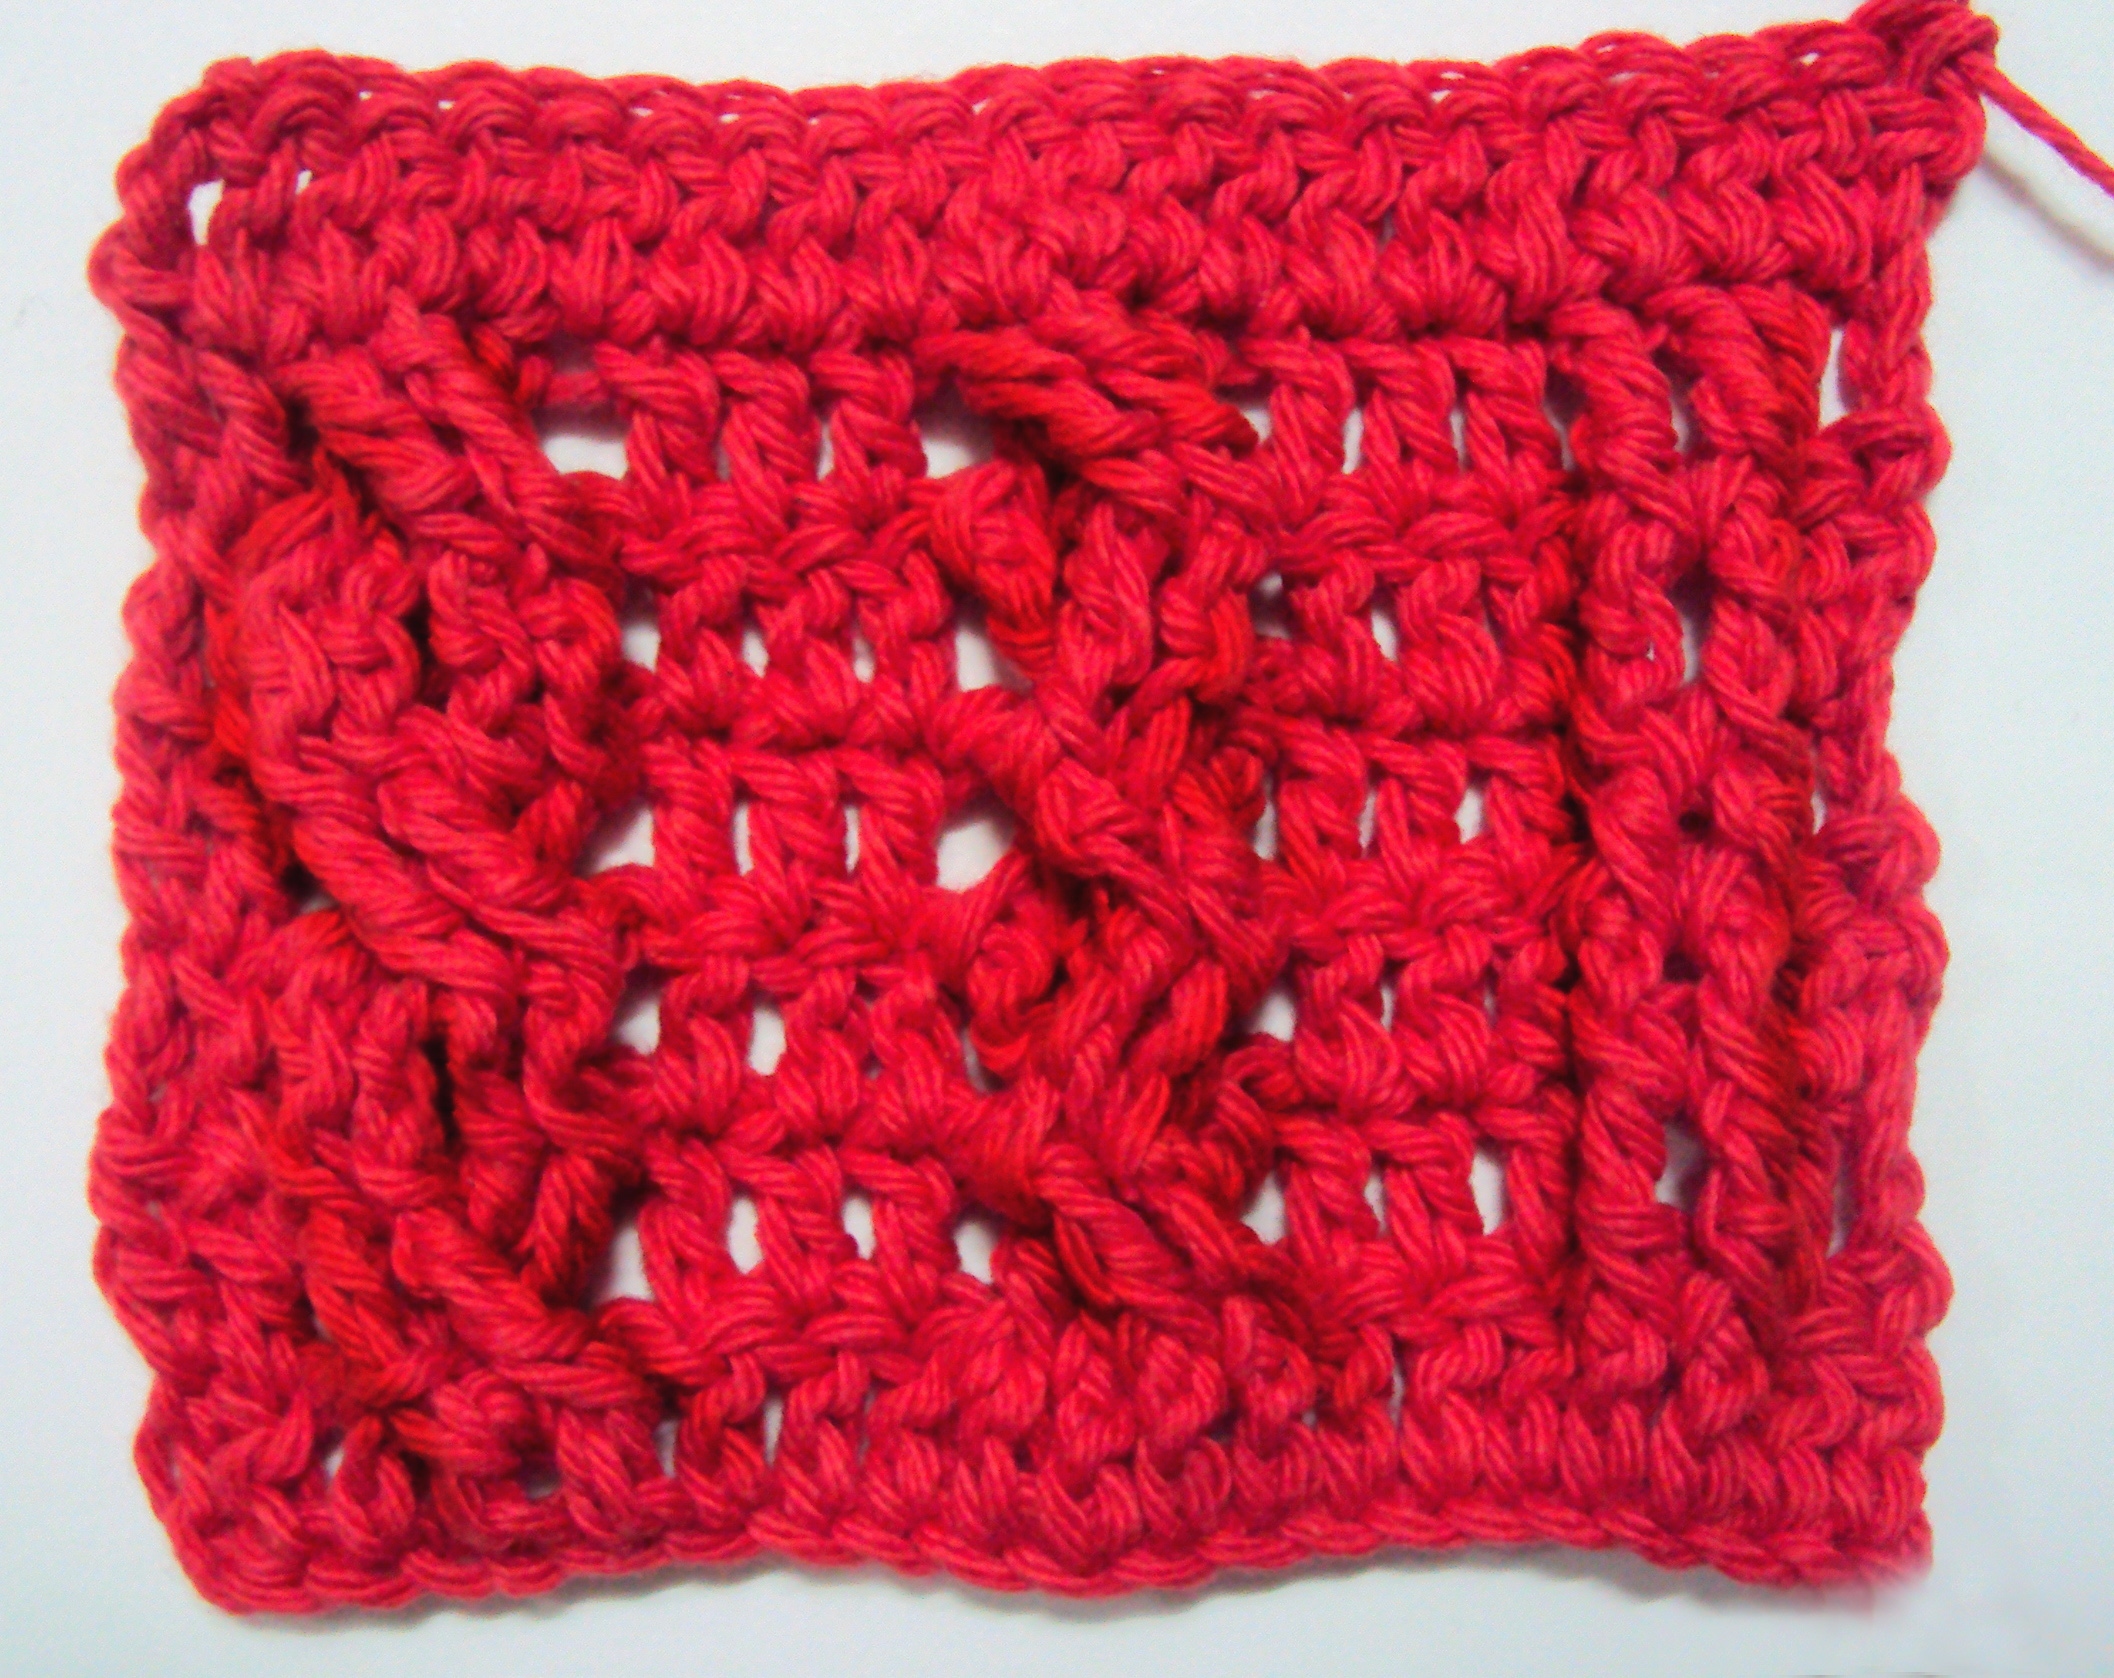 Crochet Spot ? Blog Archive ? How to Crochet: Cable Stitches ...